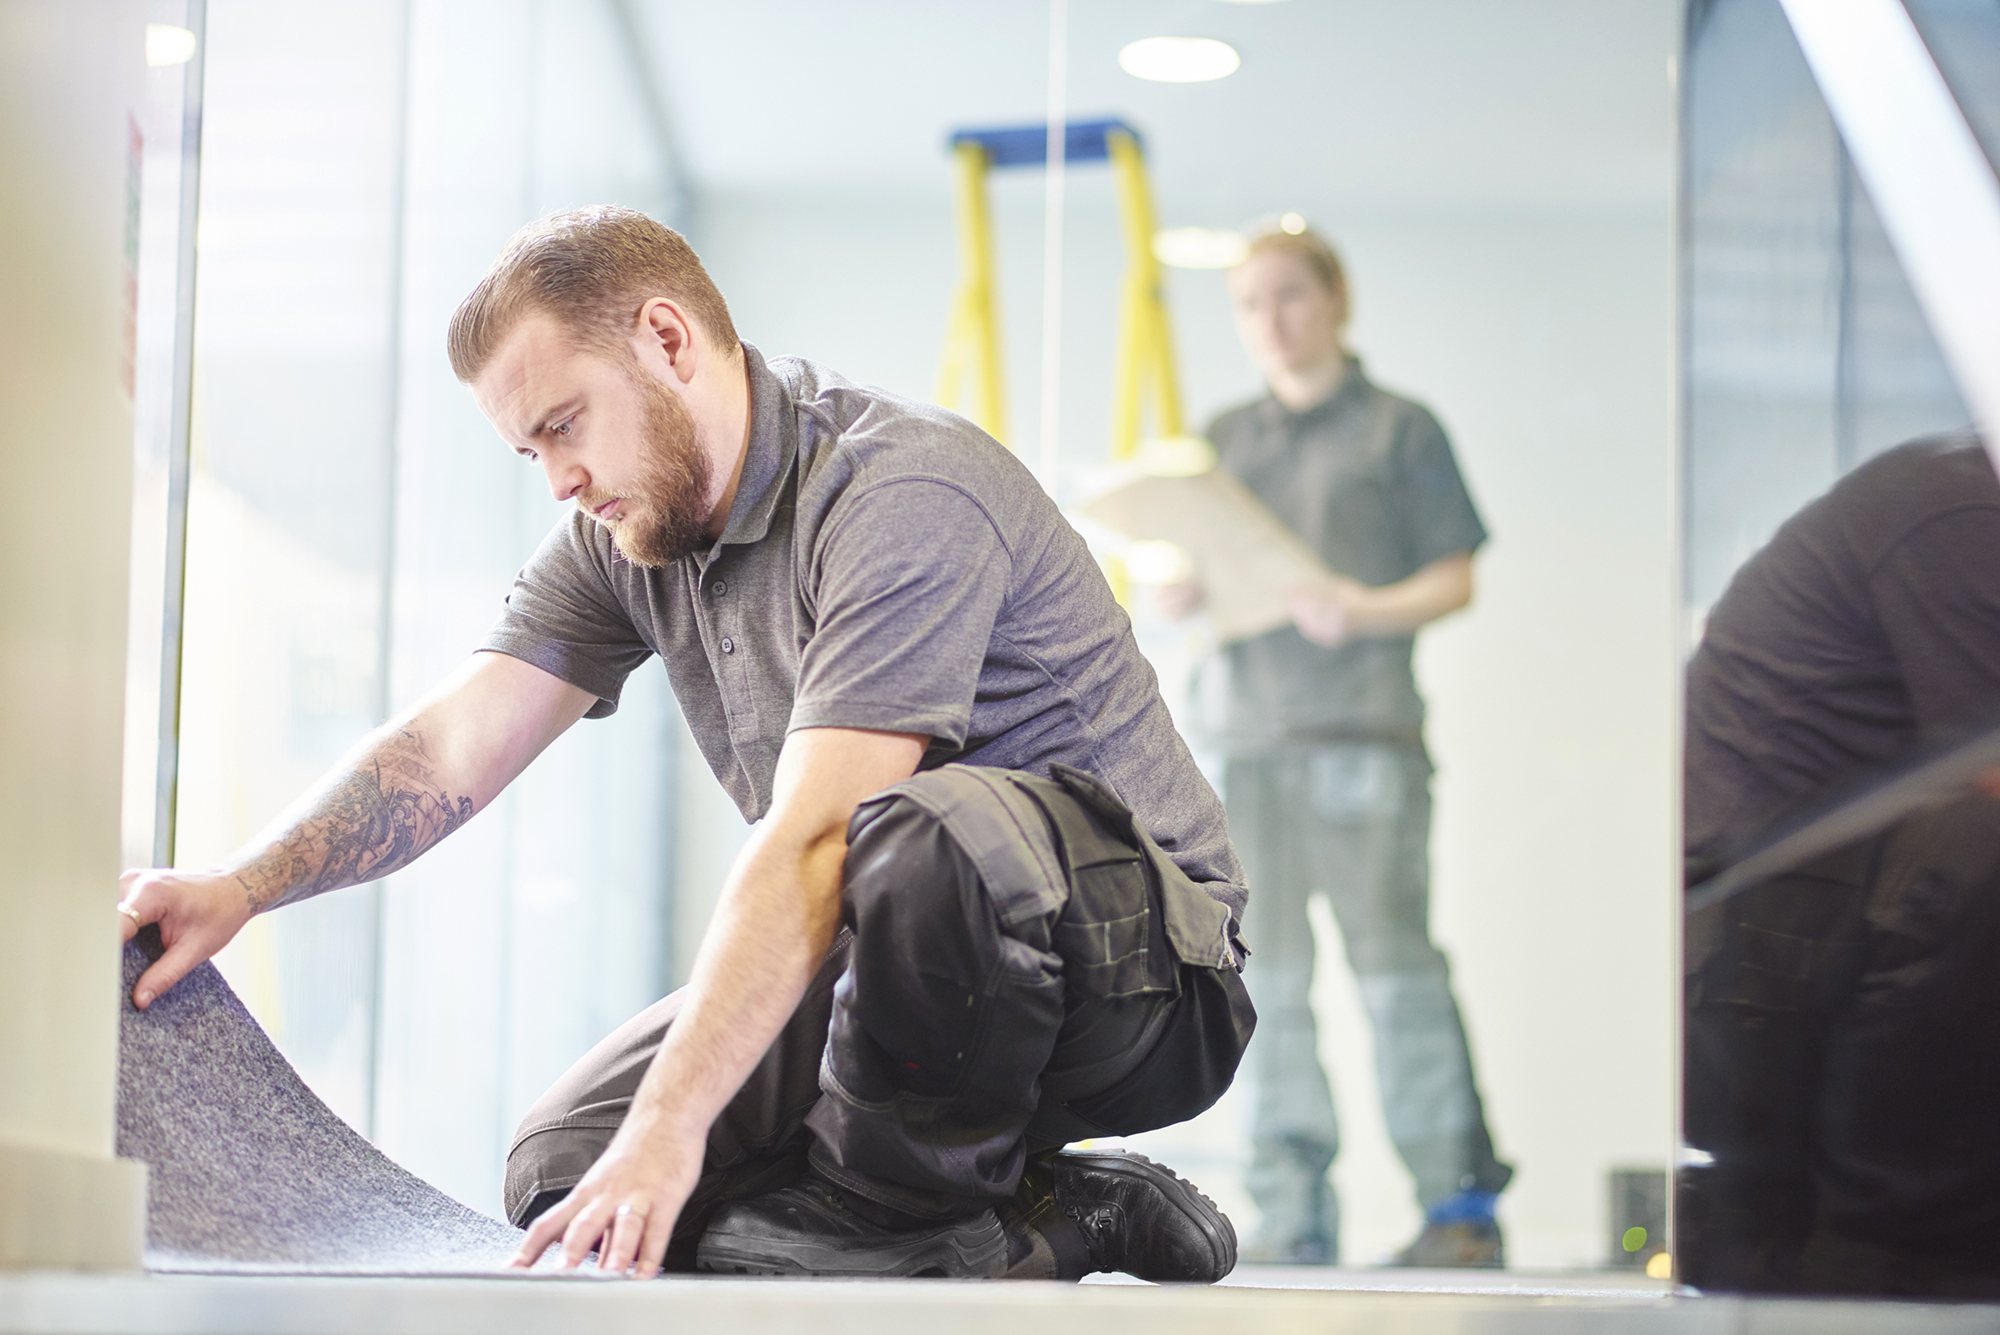 a male carpet fitter is installing carpet  in a modern office refurbishment. IN the background a female co-worker can be seen holding plans . They are wearing safety workwear.